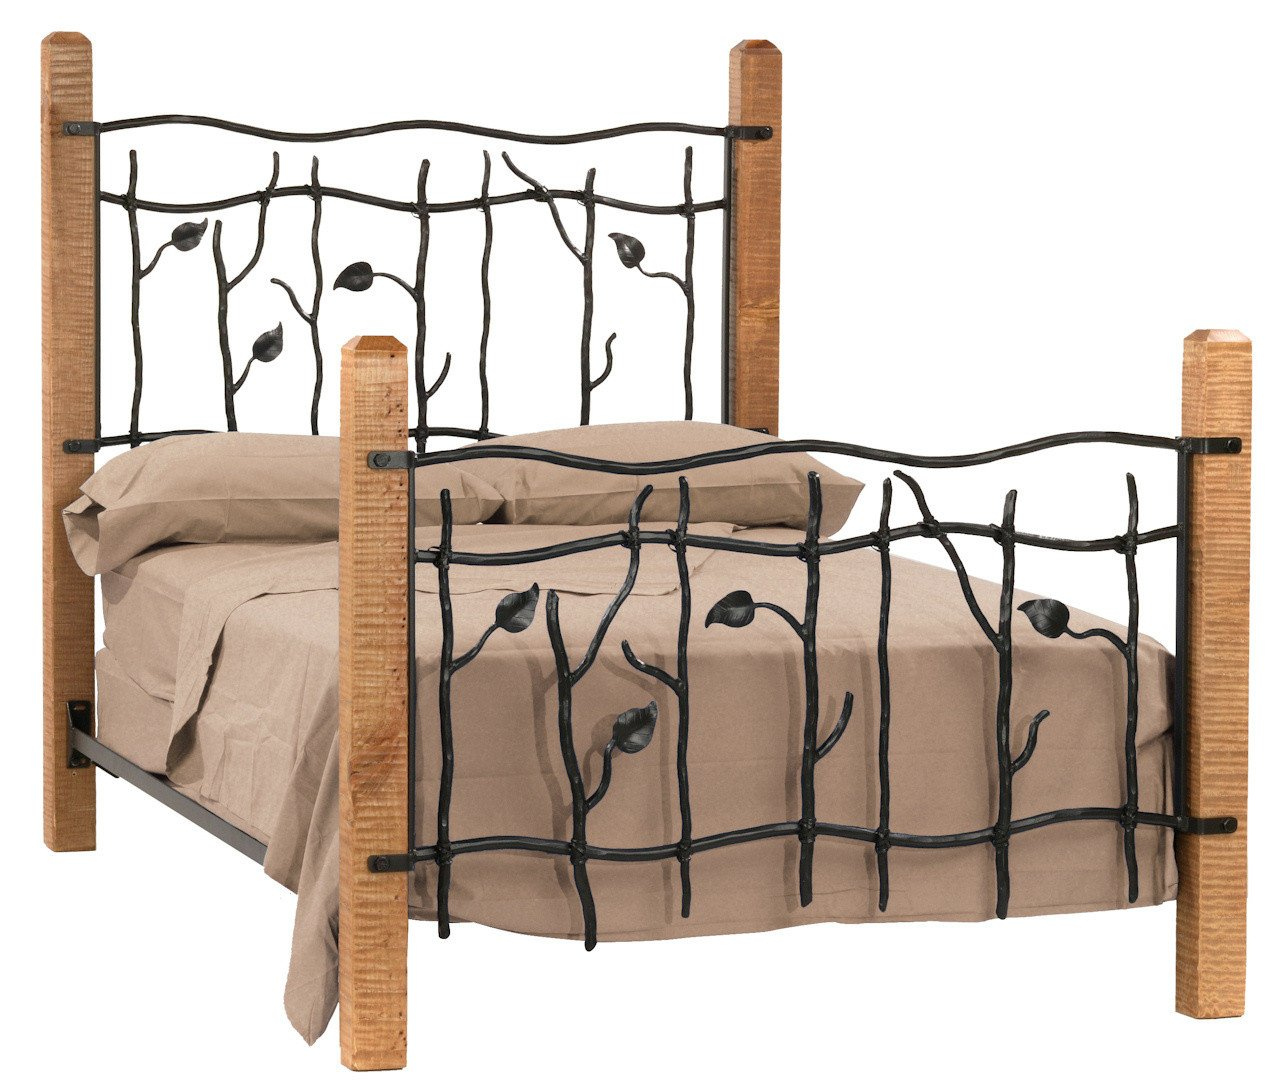 Stone County Bed